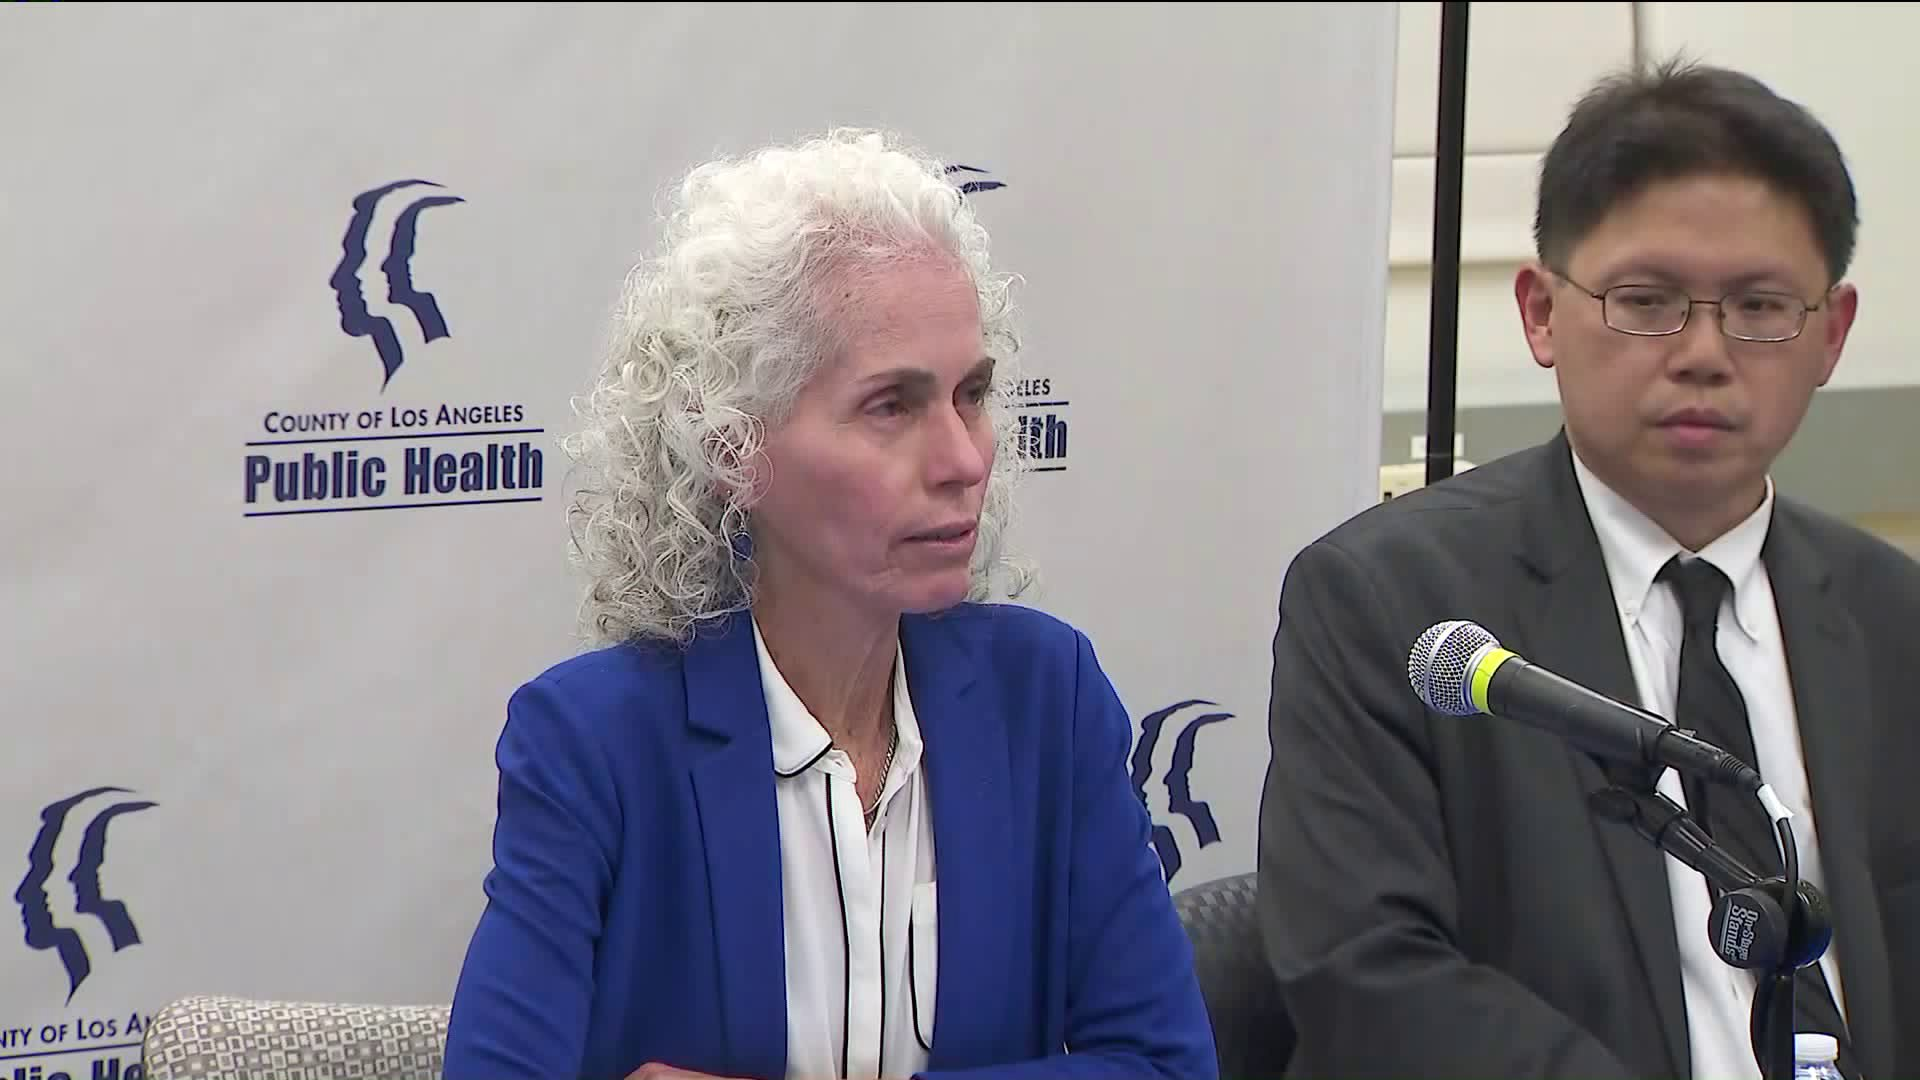 Director of the Los Angeles County Department of Public Health speaks at a news conference on Sept. 6, 2019. (Credit: KTLA)